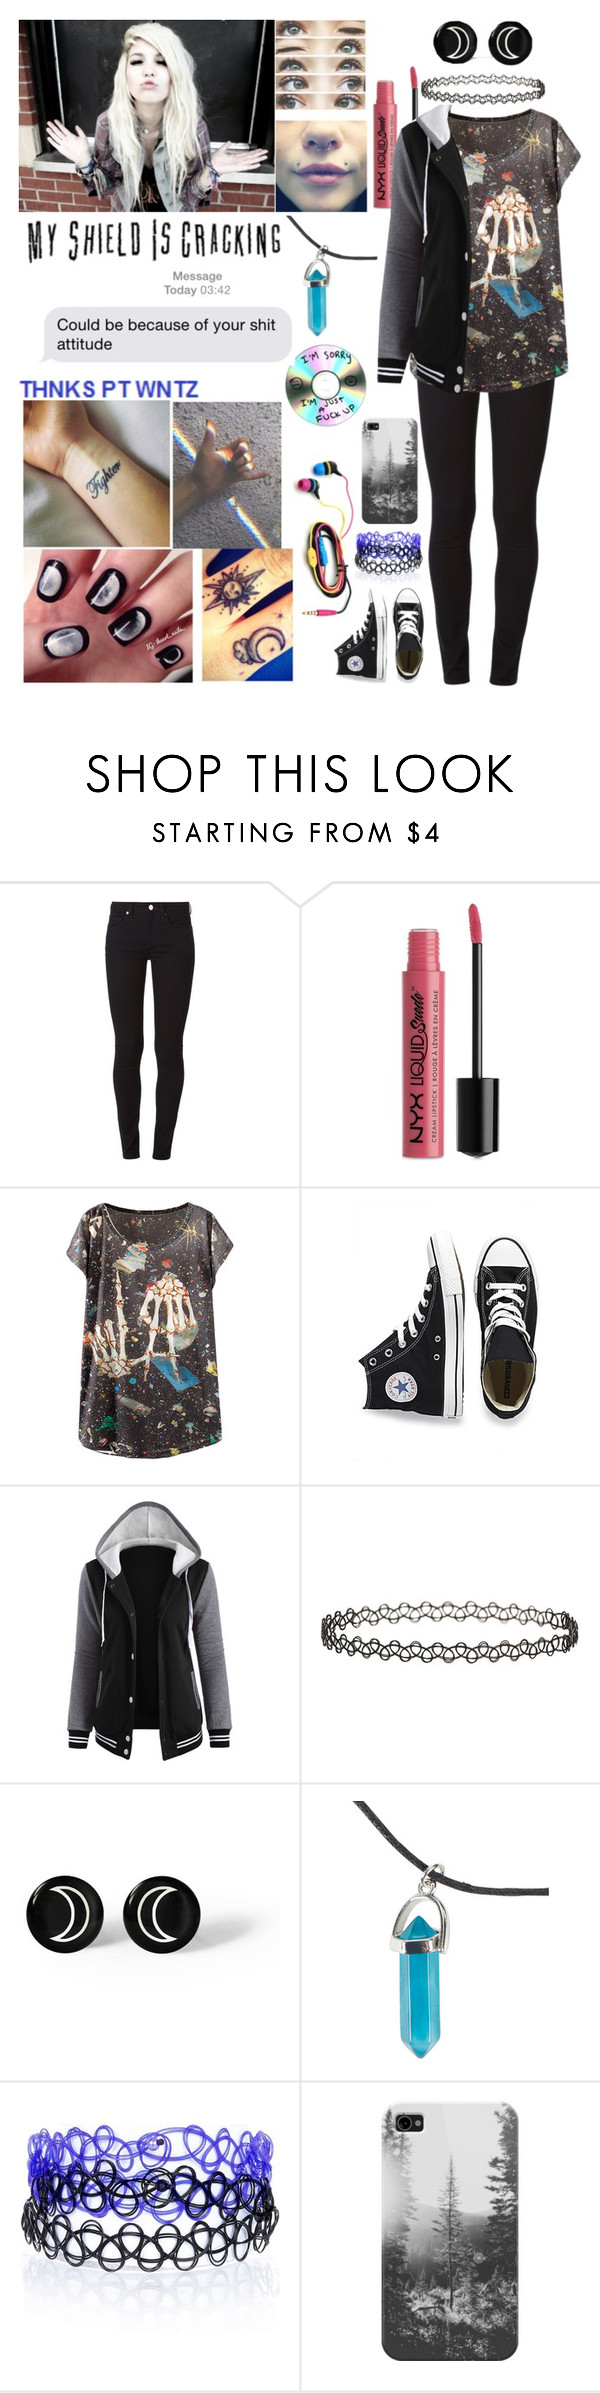 """""""Thnks pt wntz"""" by emmcg915 ❤ liked on Polyvore featuring dVb Victoria Beckham, NYX, Converse, Topshop, Brinley Co, River Island and Casetify"""